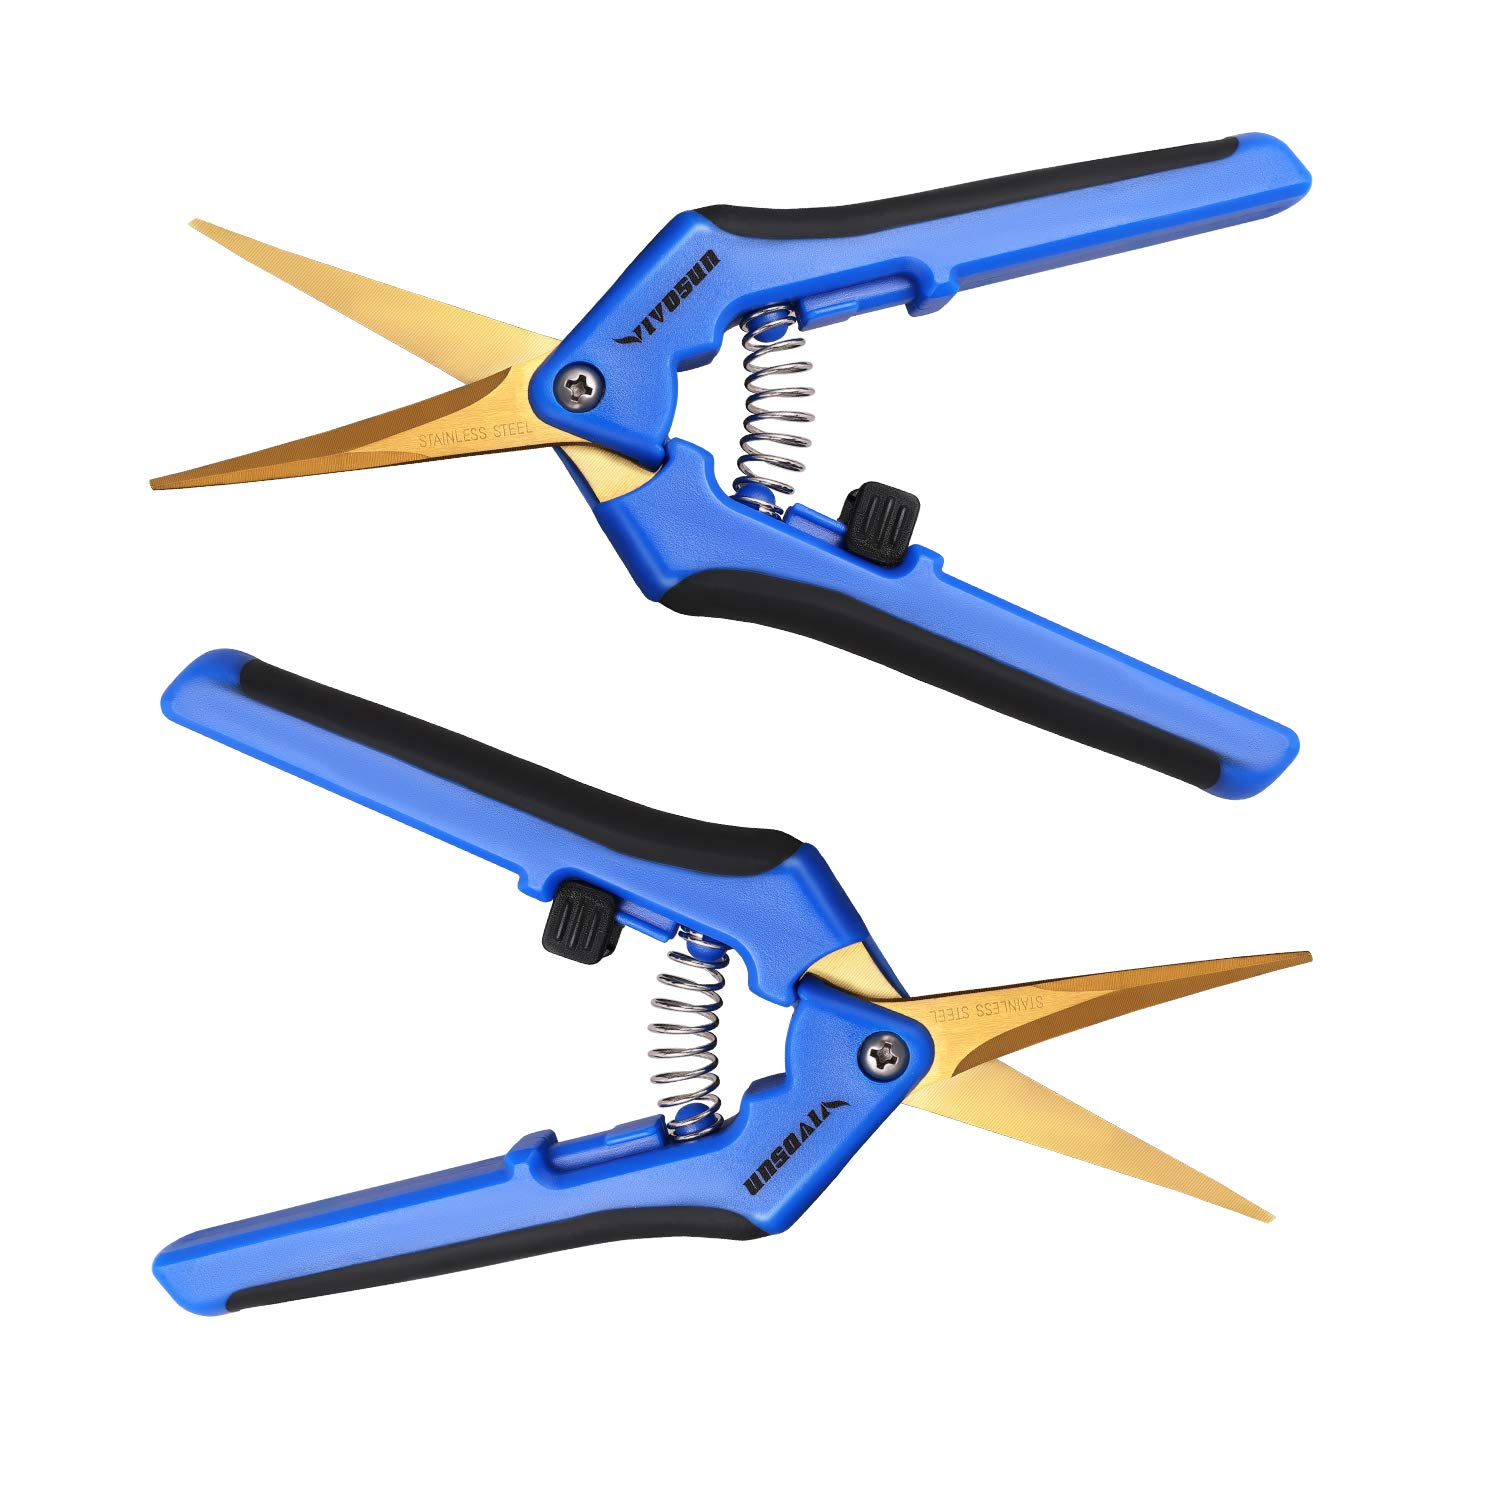 2Pack Curved Blade VIVOSUN Gardening Hand Pruner Pruning Shear with Titanium Coated Curved Precision Blades